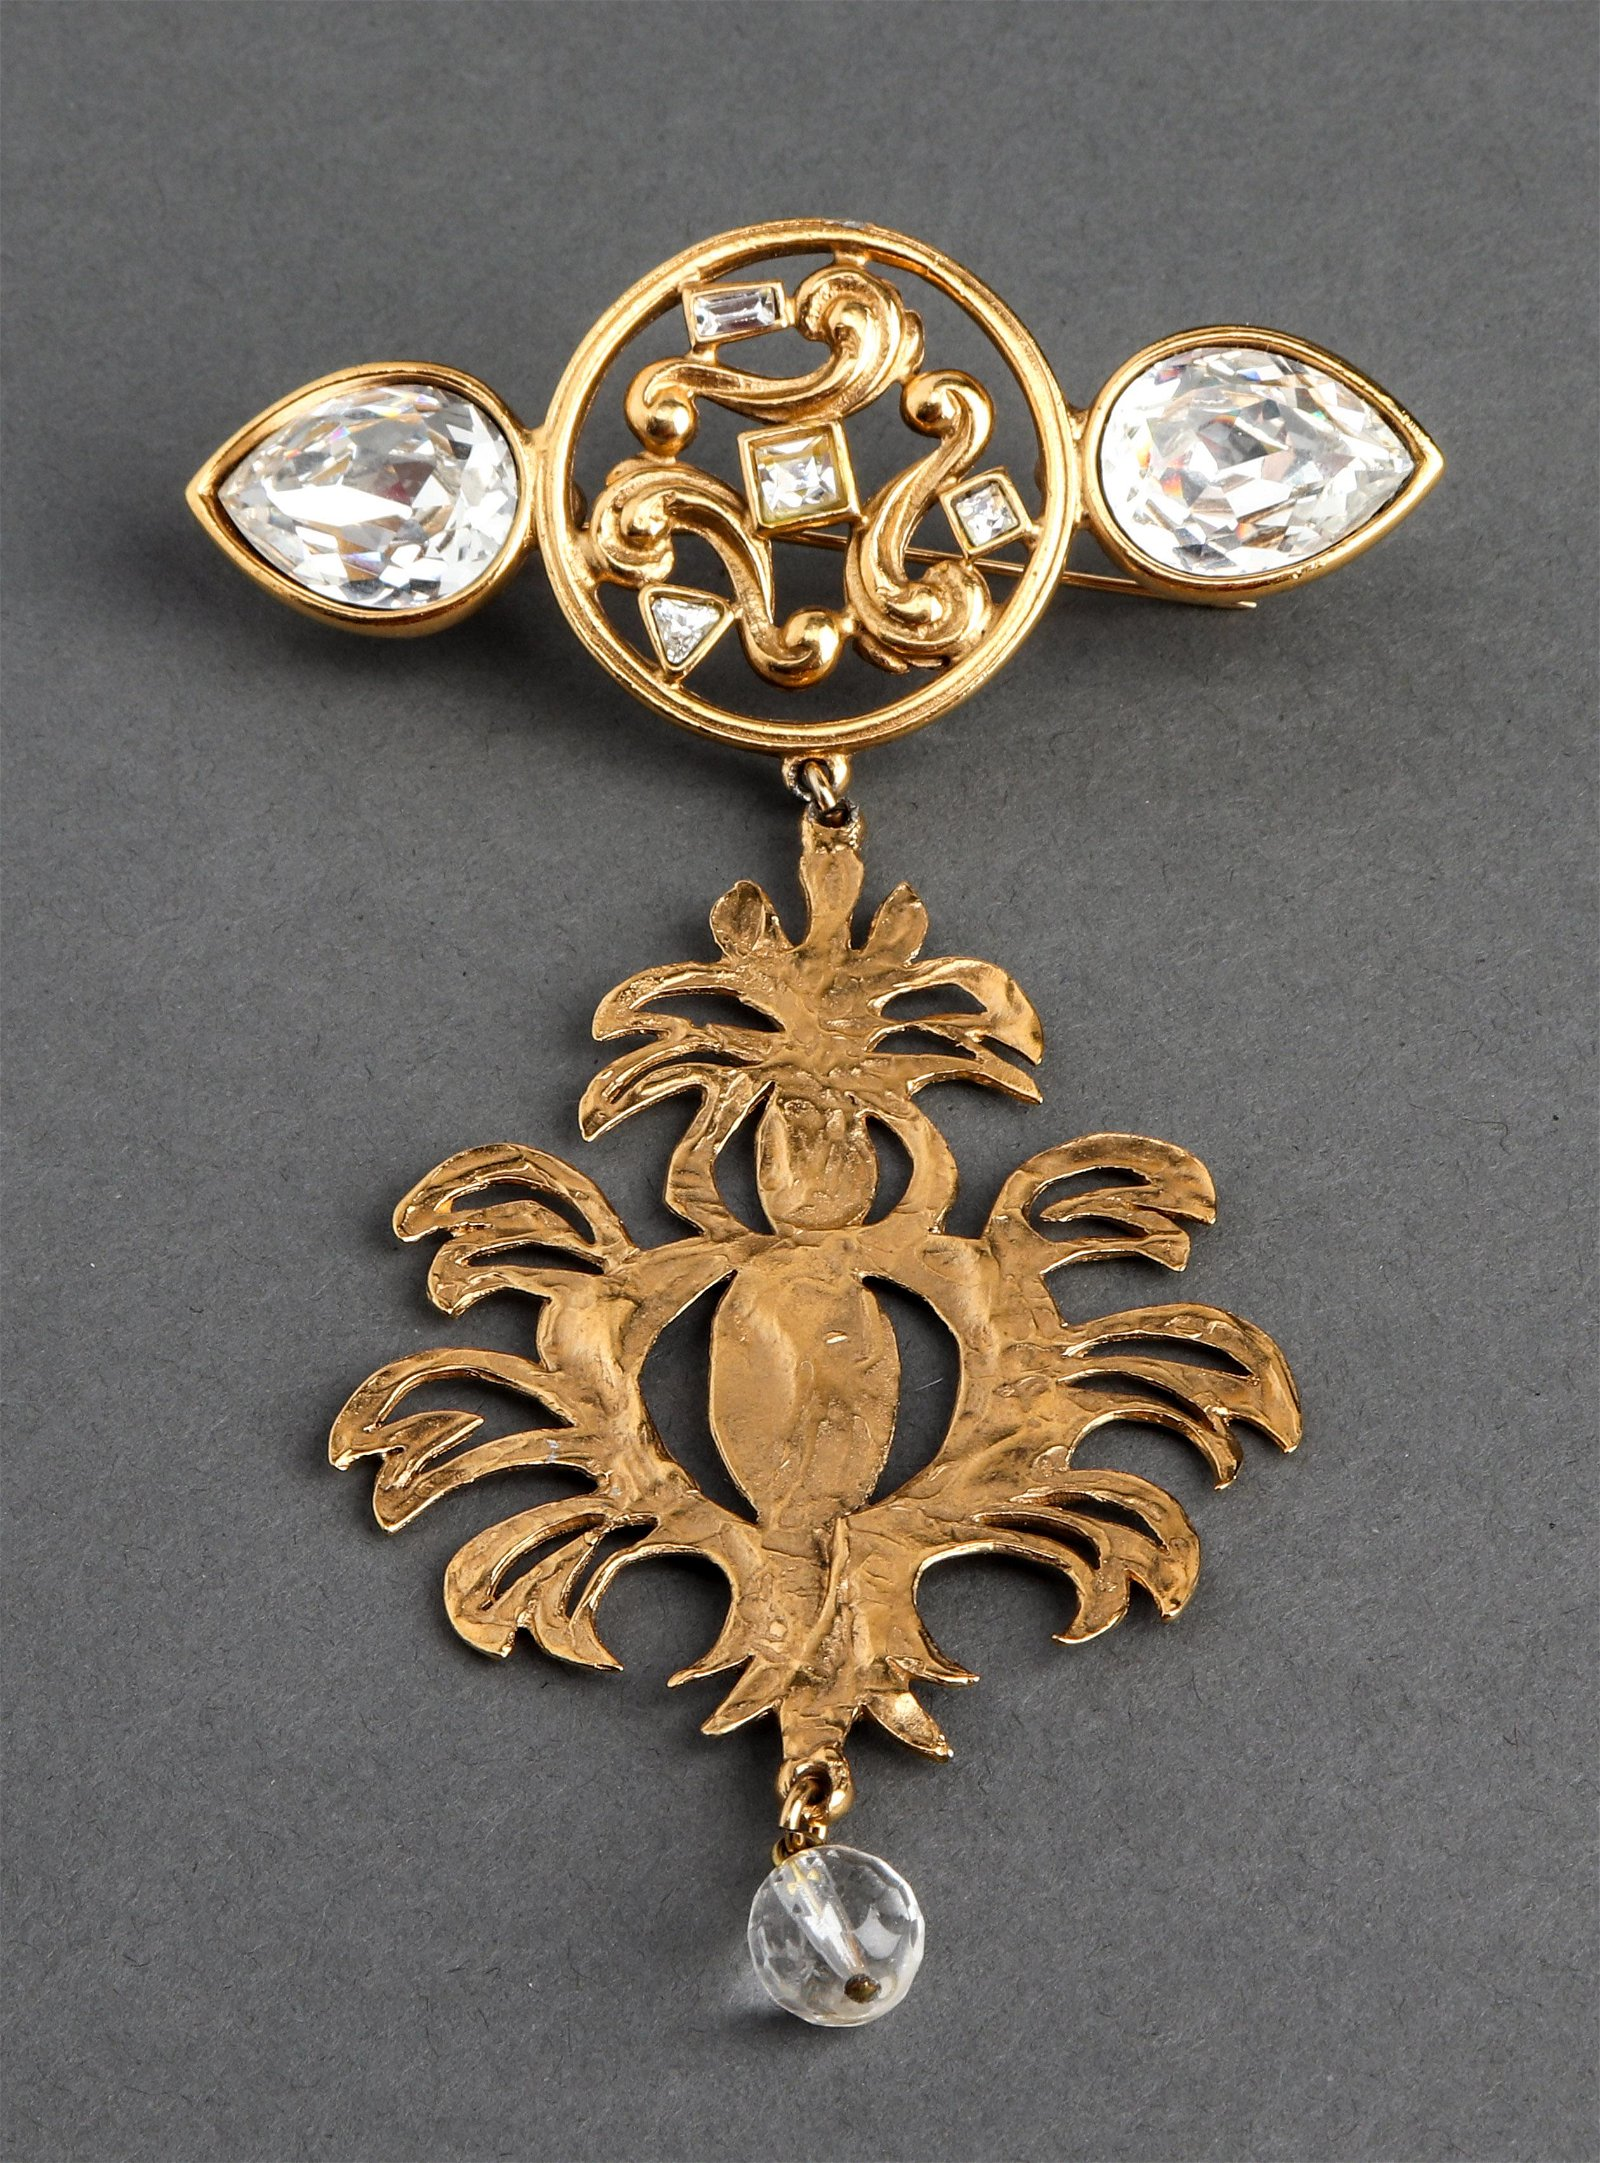 Yves Saint Laurent Gold-Tone Pendant Brooch